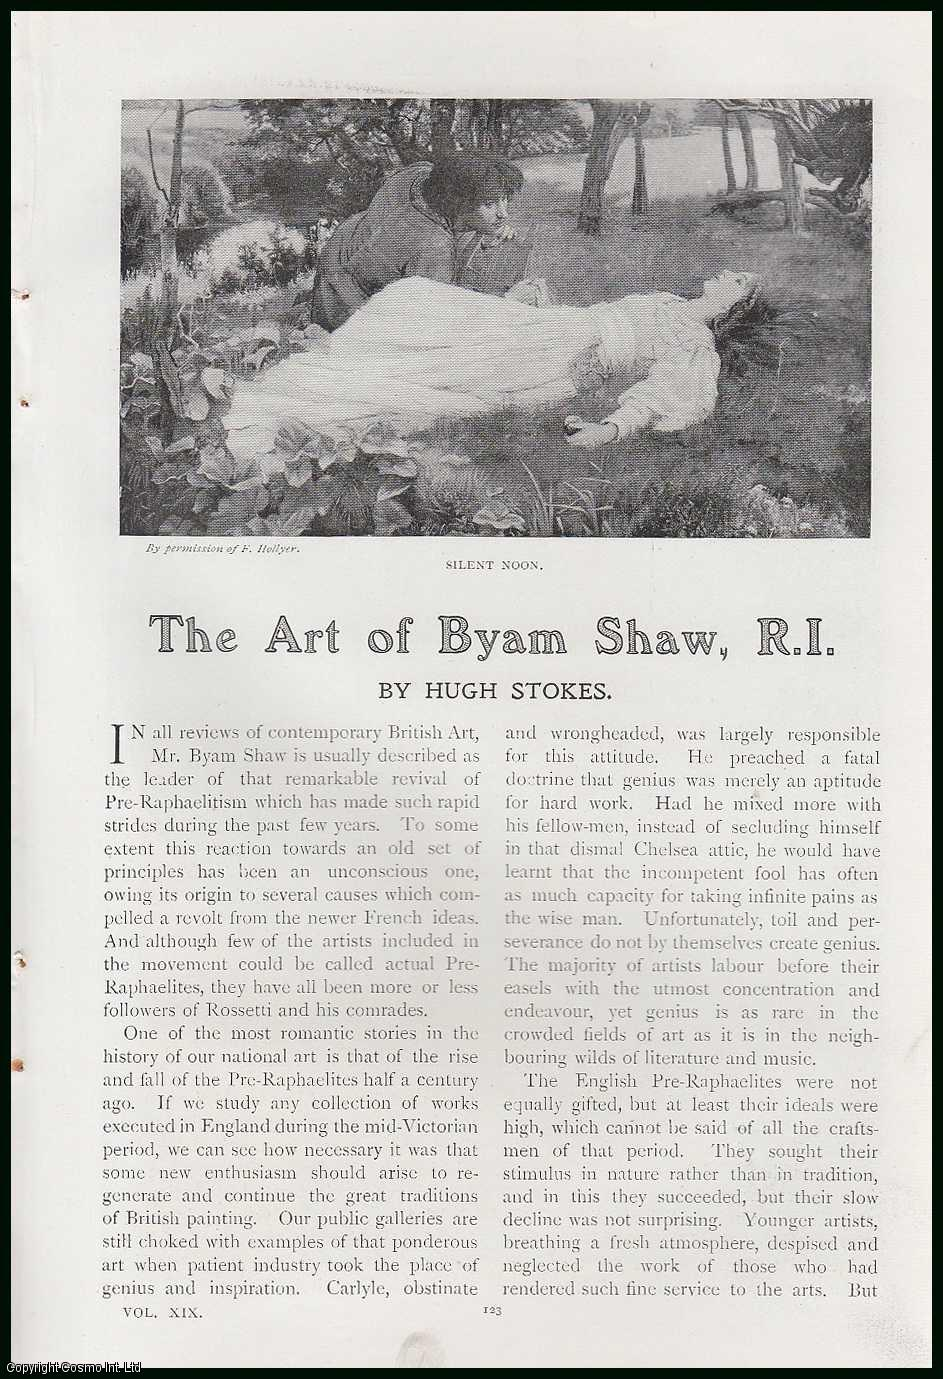 STOKES, HUGH - The Art of Byam Shaw, R. I. An original article from the Lady's Realm 1906.